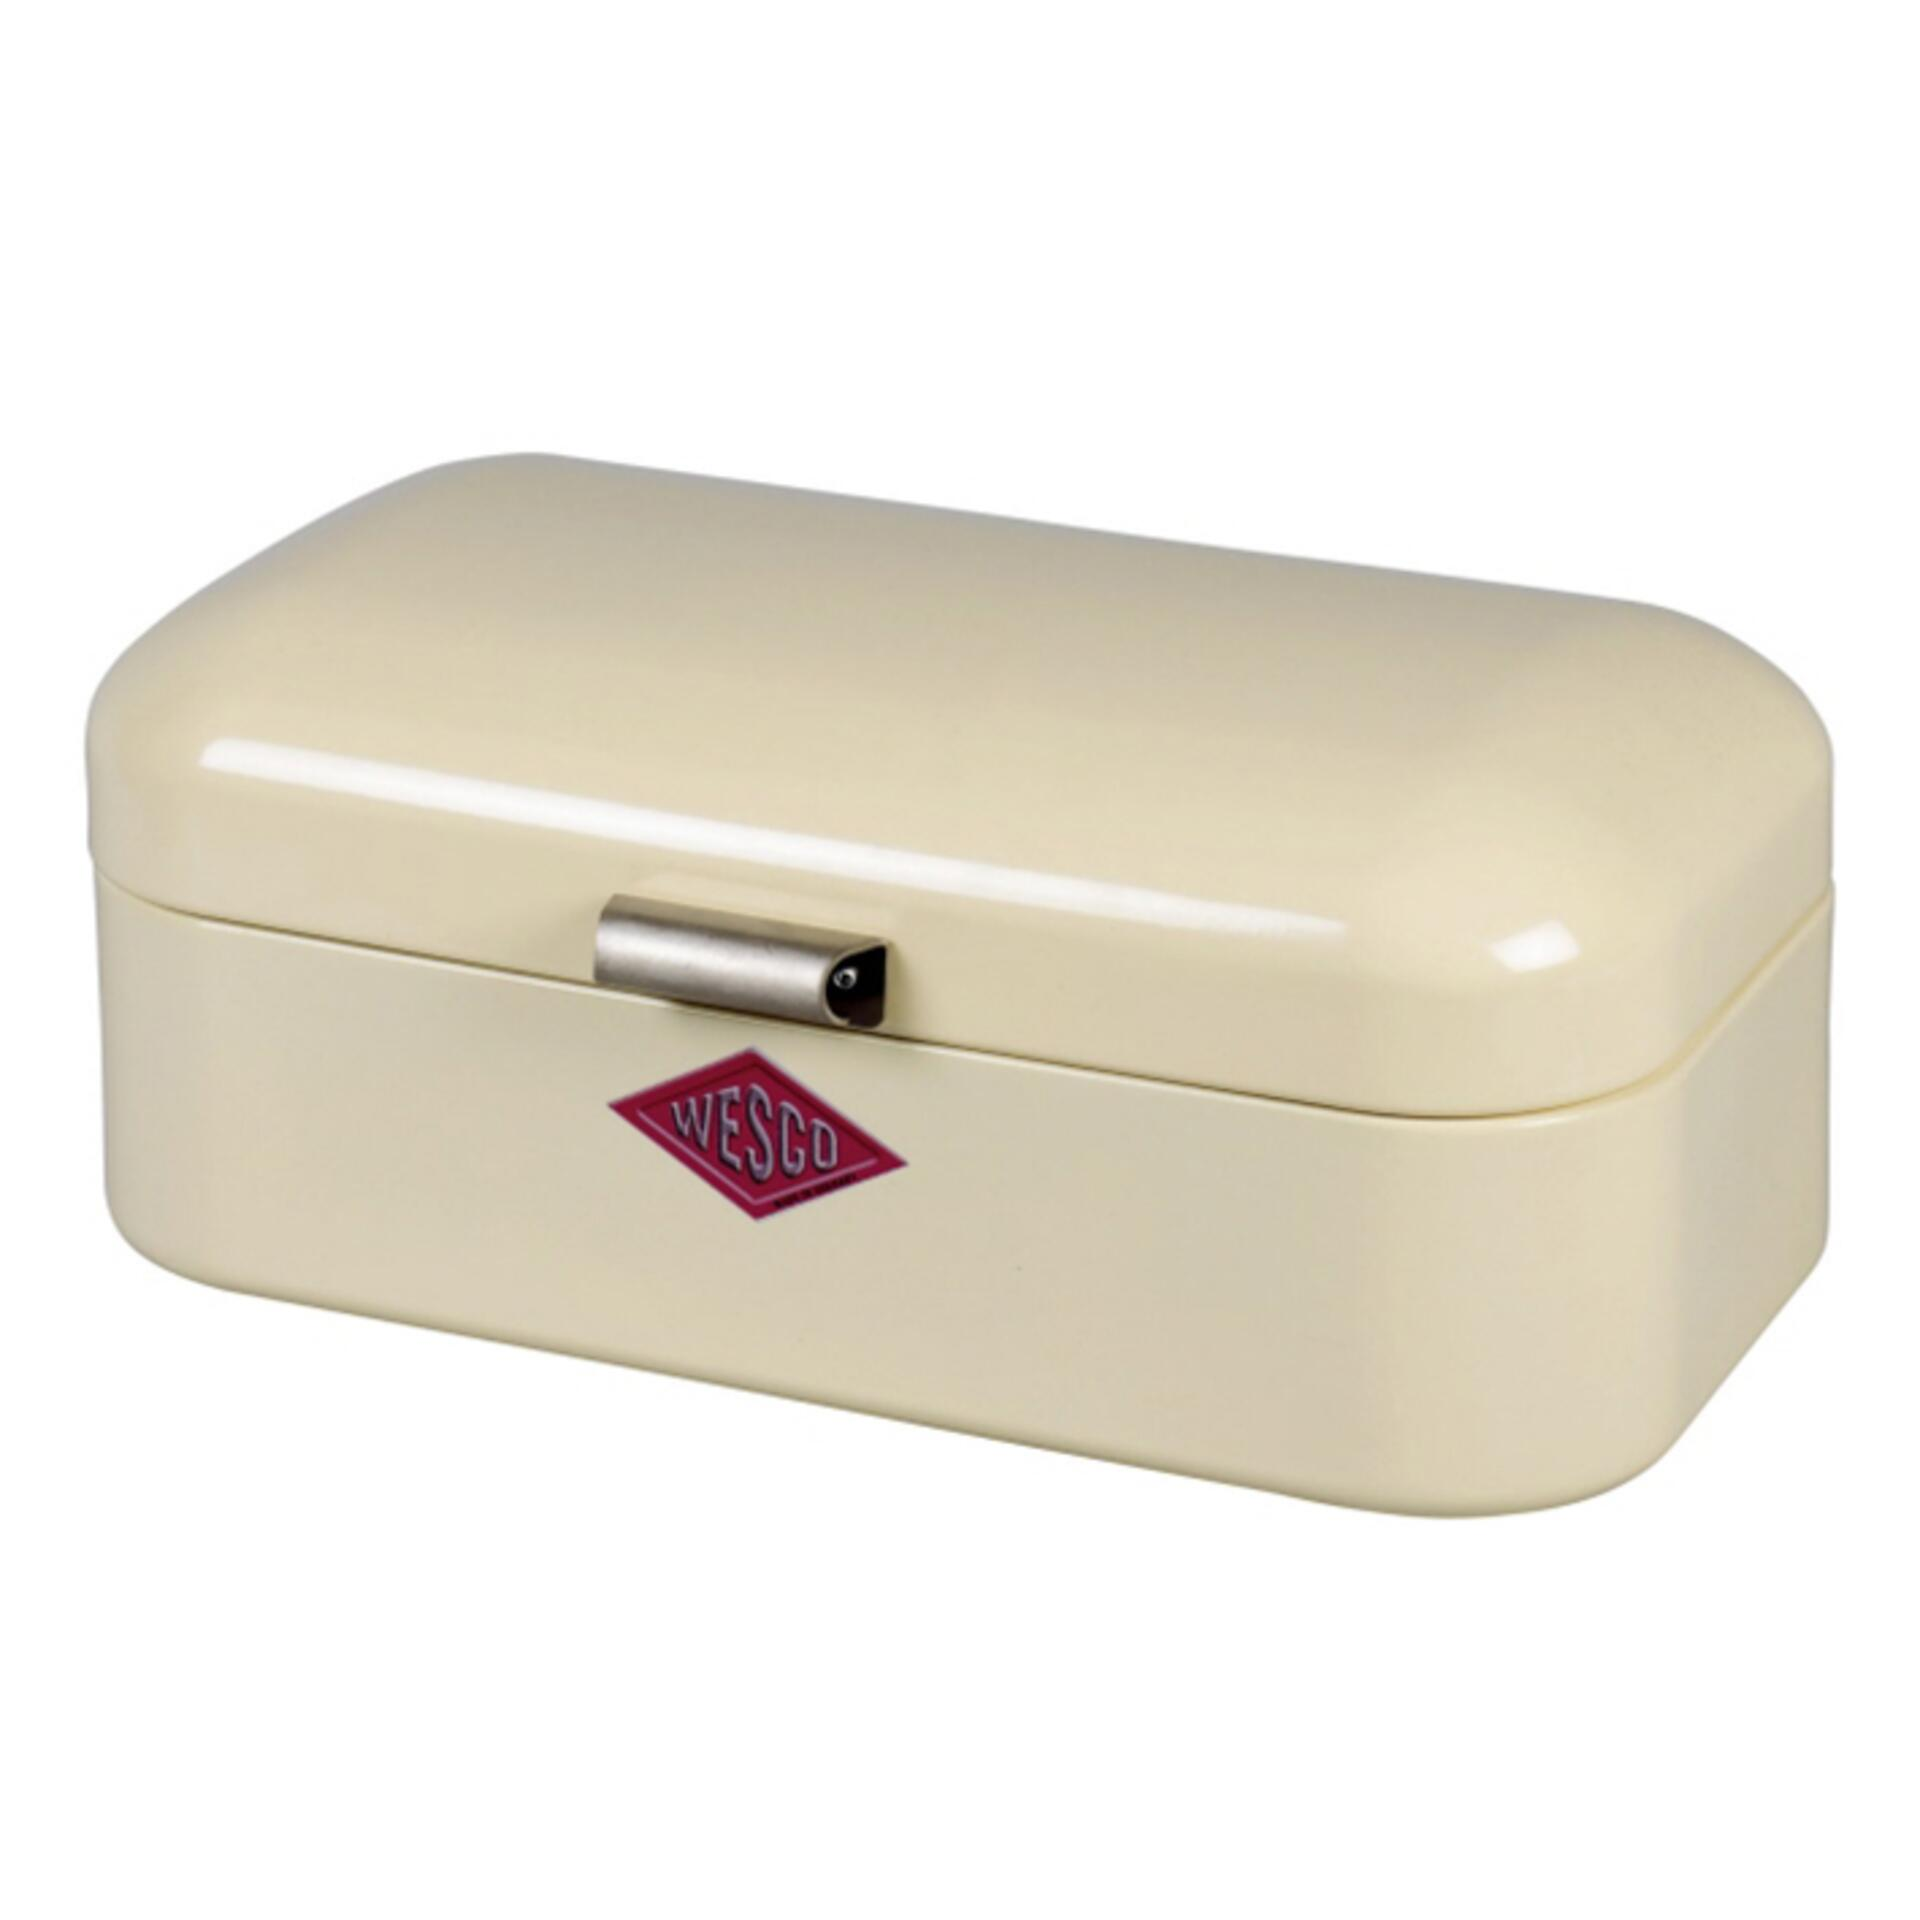 Wesco Breadbox Grandy Mandel